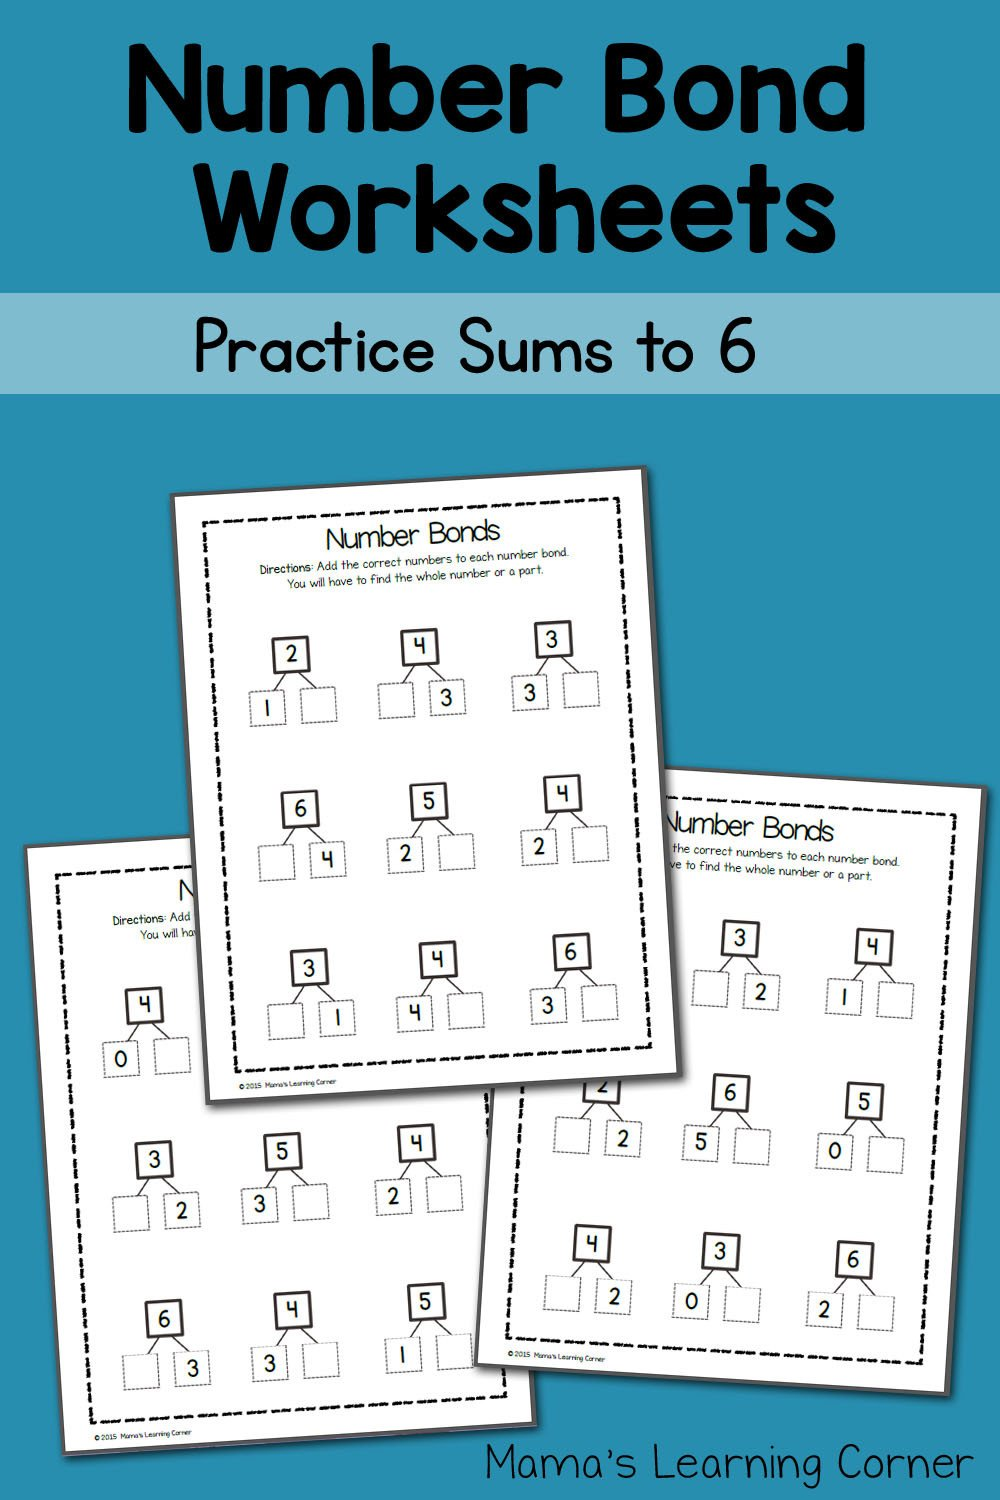 Kindergarten Number Bonds Worksheets Number Bond Worksheets Sums to 6 Mamas Learning Corner